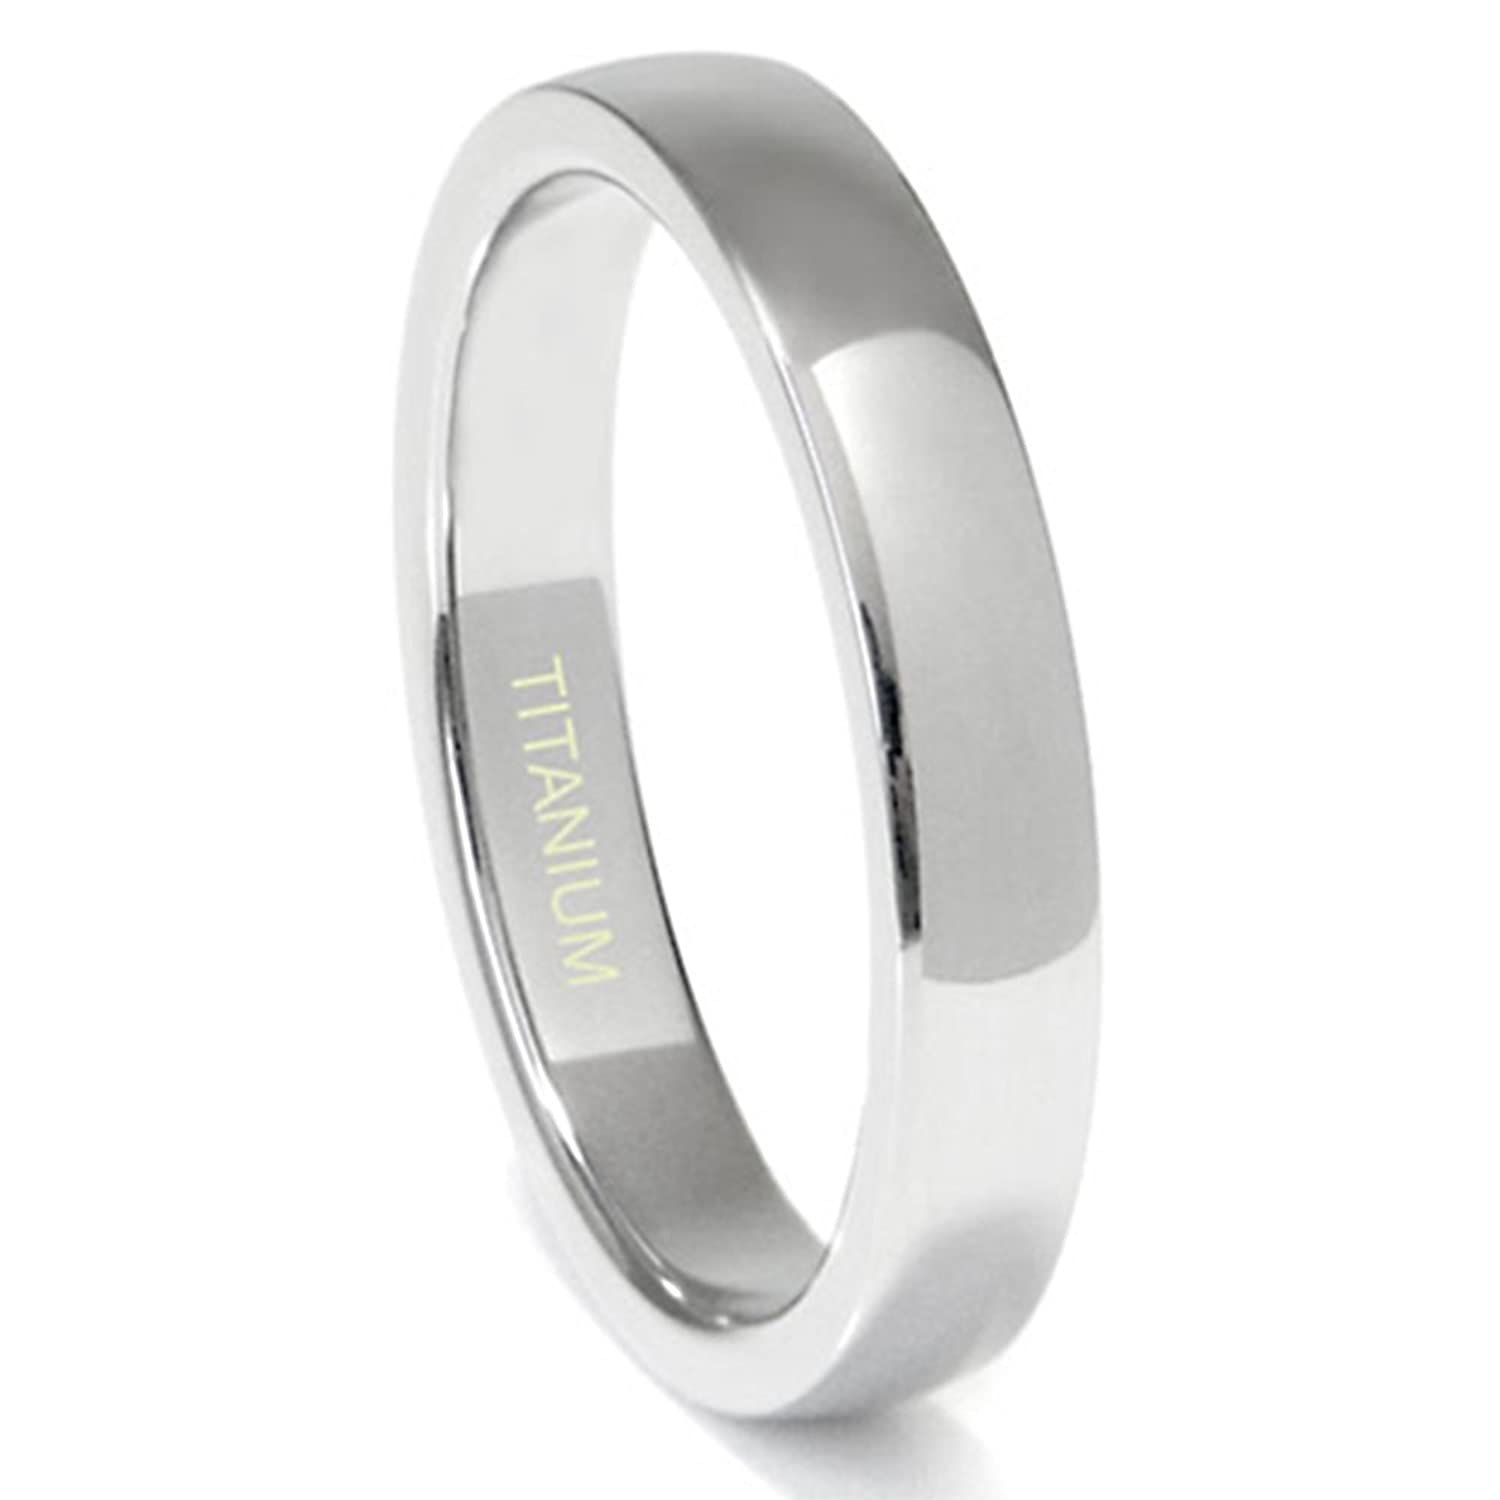 Titanium 4MM High Polish Plain Dome Wedding Band Ring (Sizes 6 to 13.5)